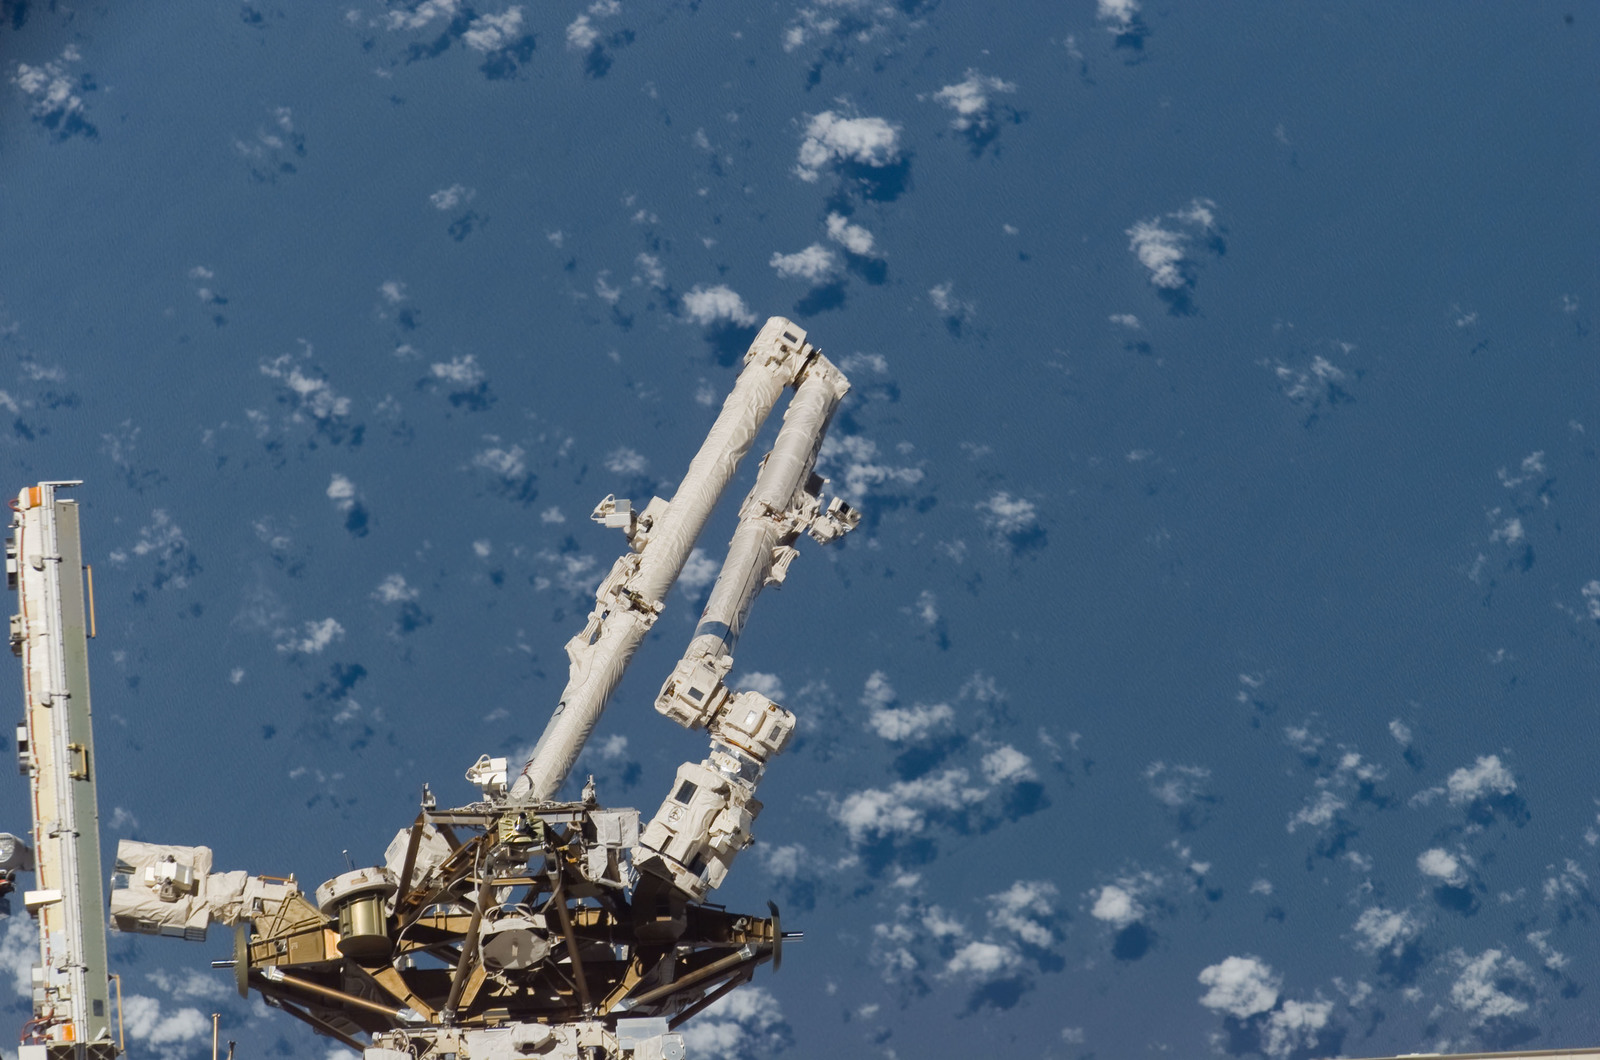 S117E08791 - STS-117 - MBS, MT, and SSRMS or Canadarm2 taken during STS-117 Mission